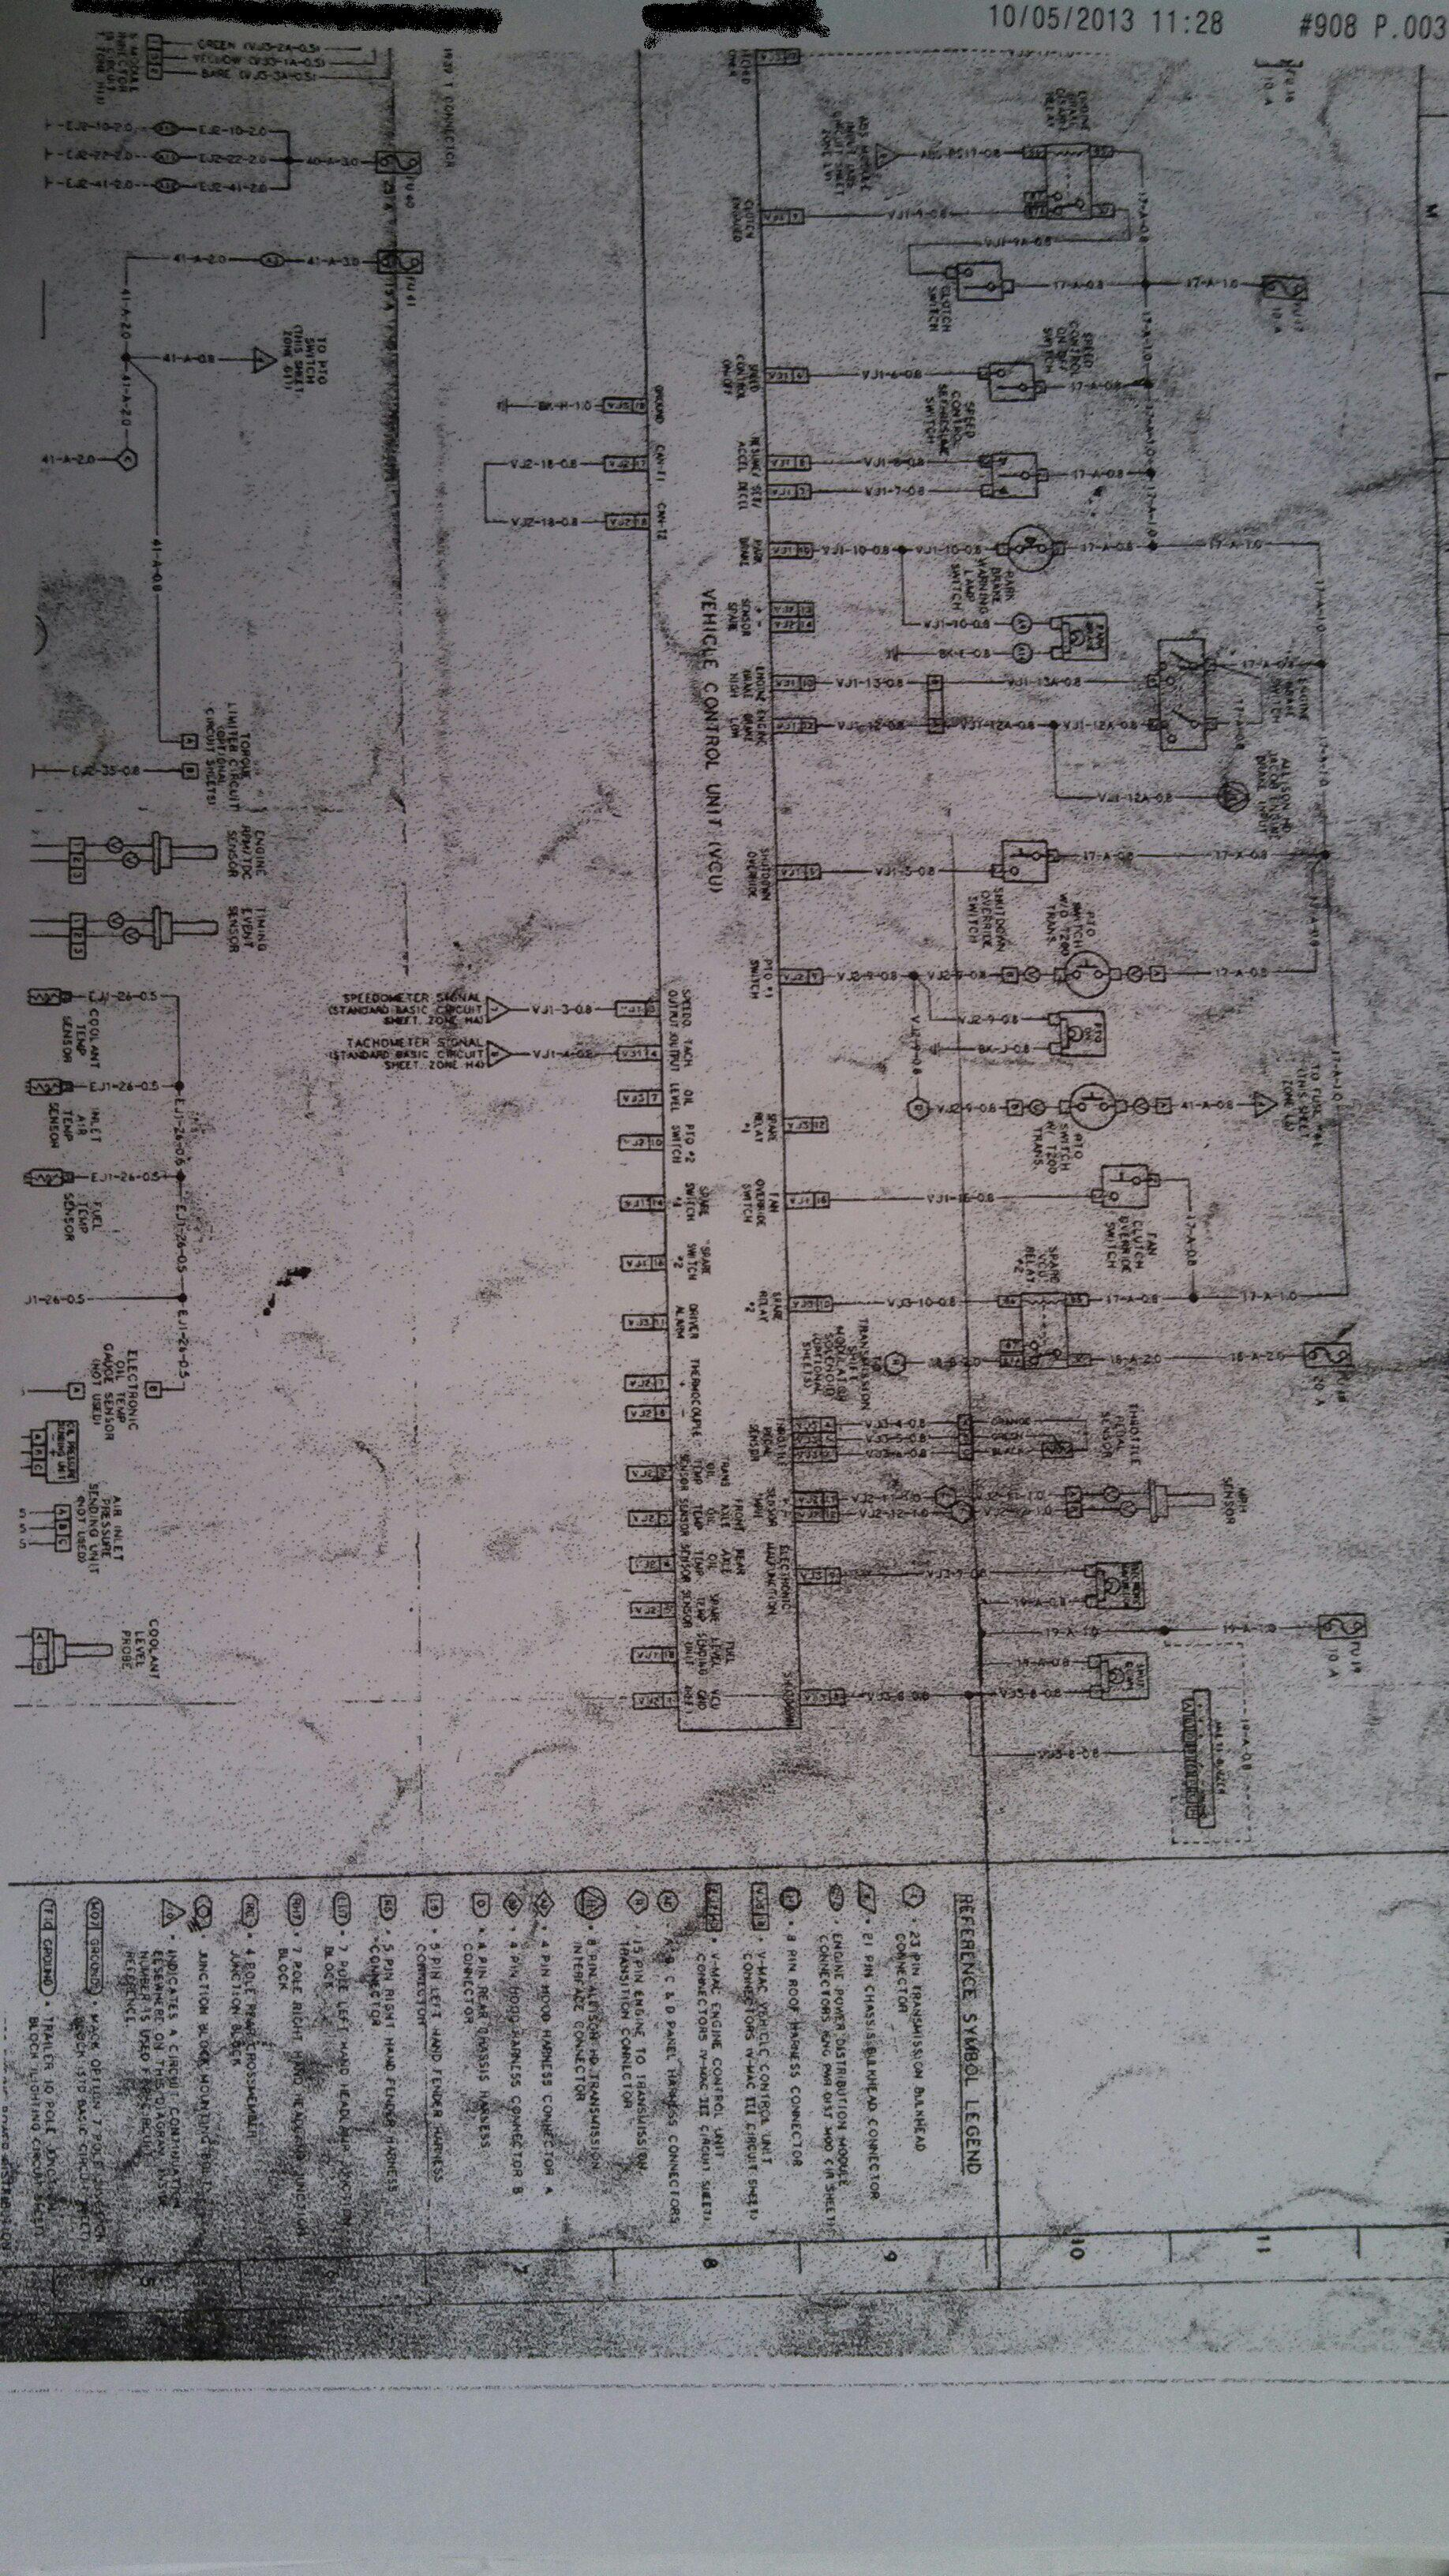 1978 Mack Wire Diagram Free Download Wiring Diagrams 88 Cool Fuse Gallery Best Image Guigou Us Charming Pictures Engine At B 61 Gin Pole